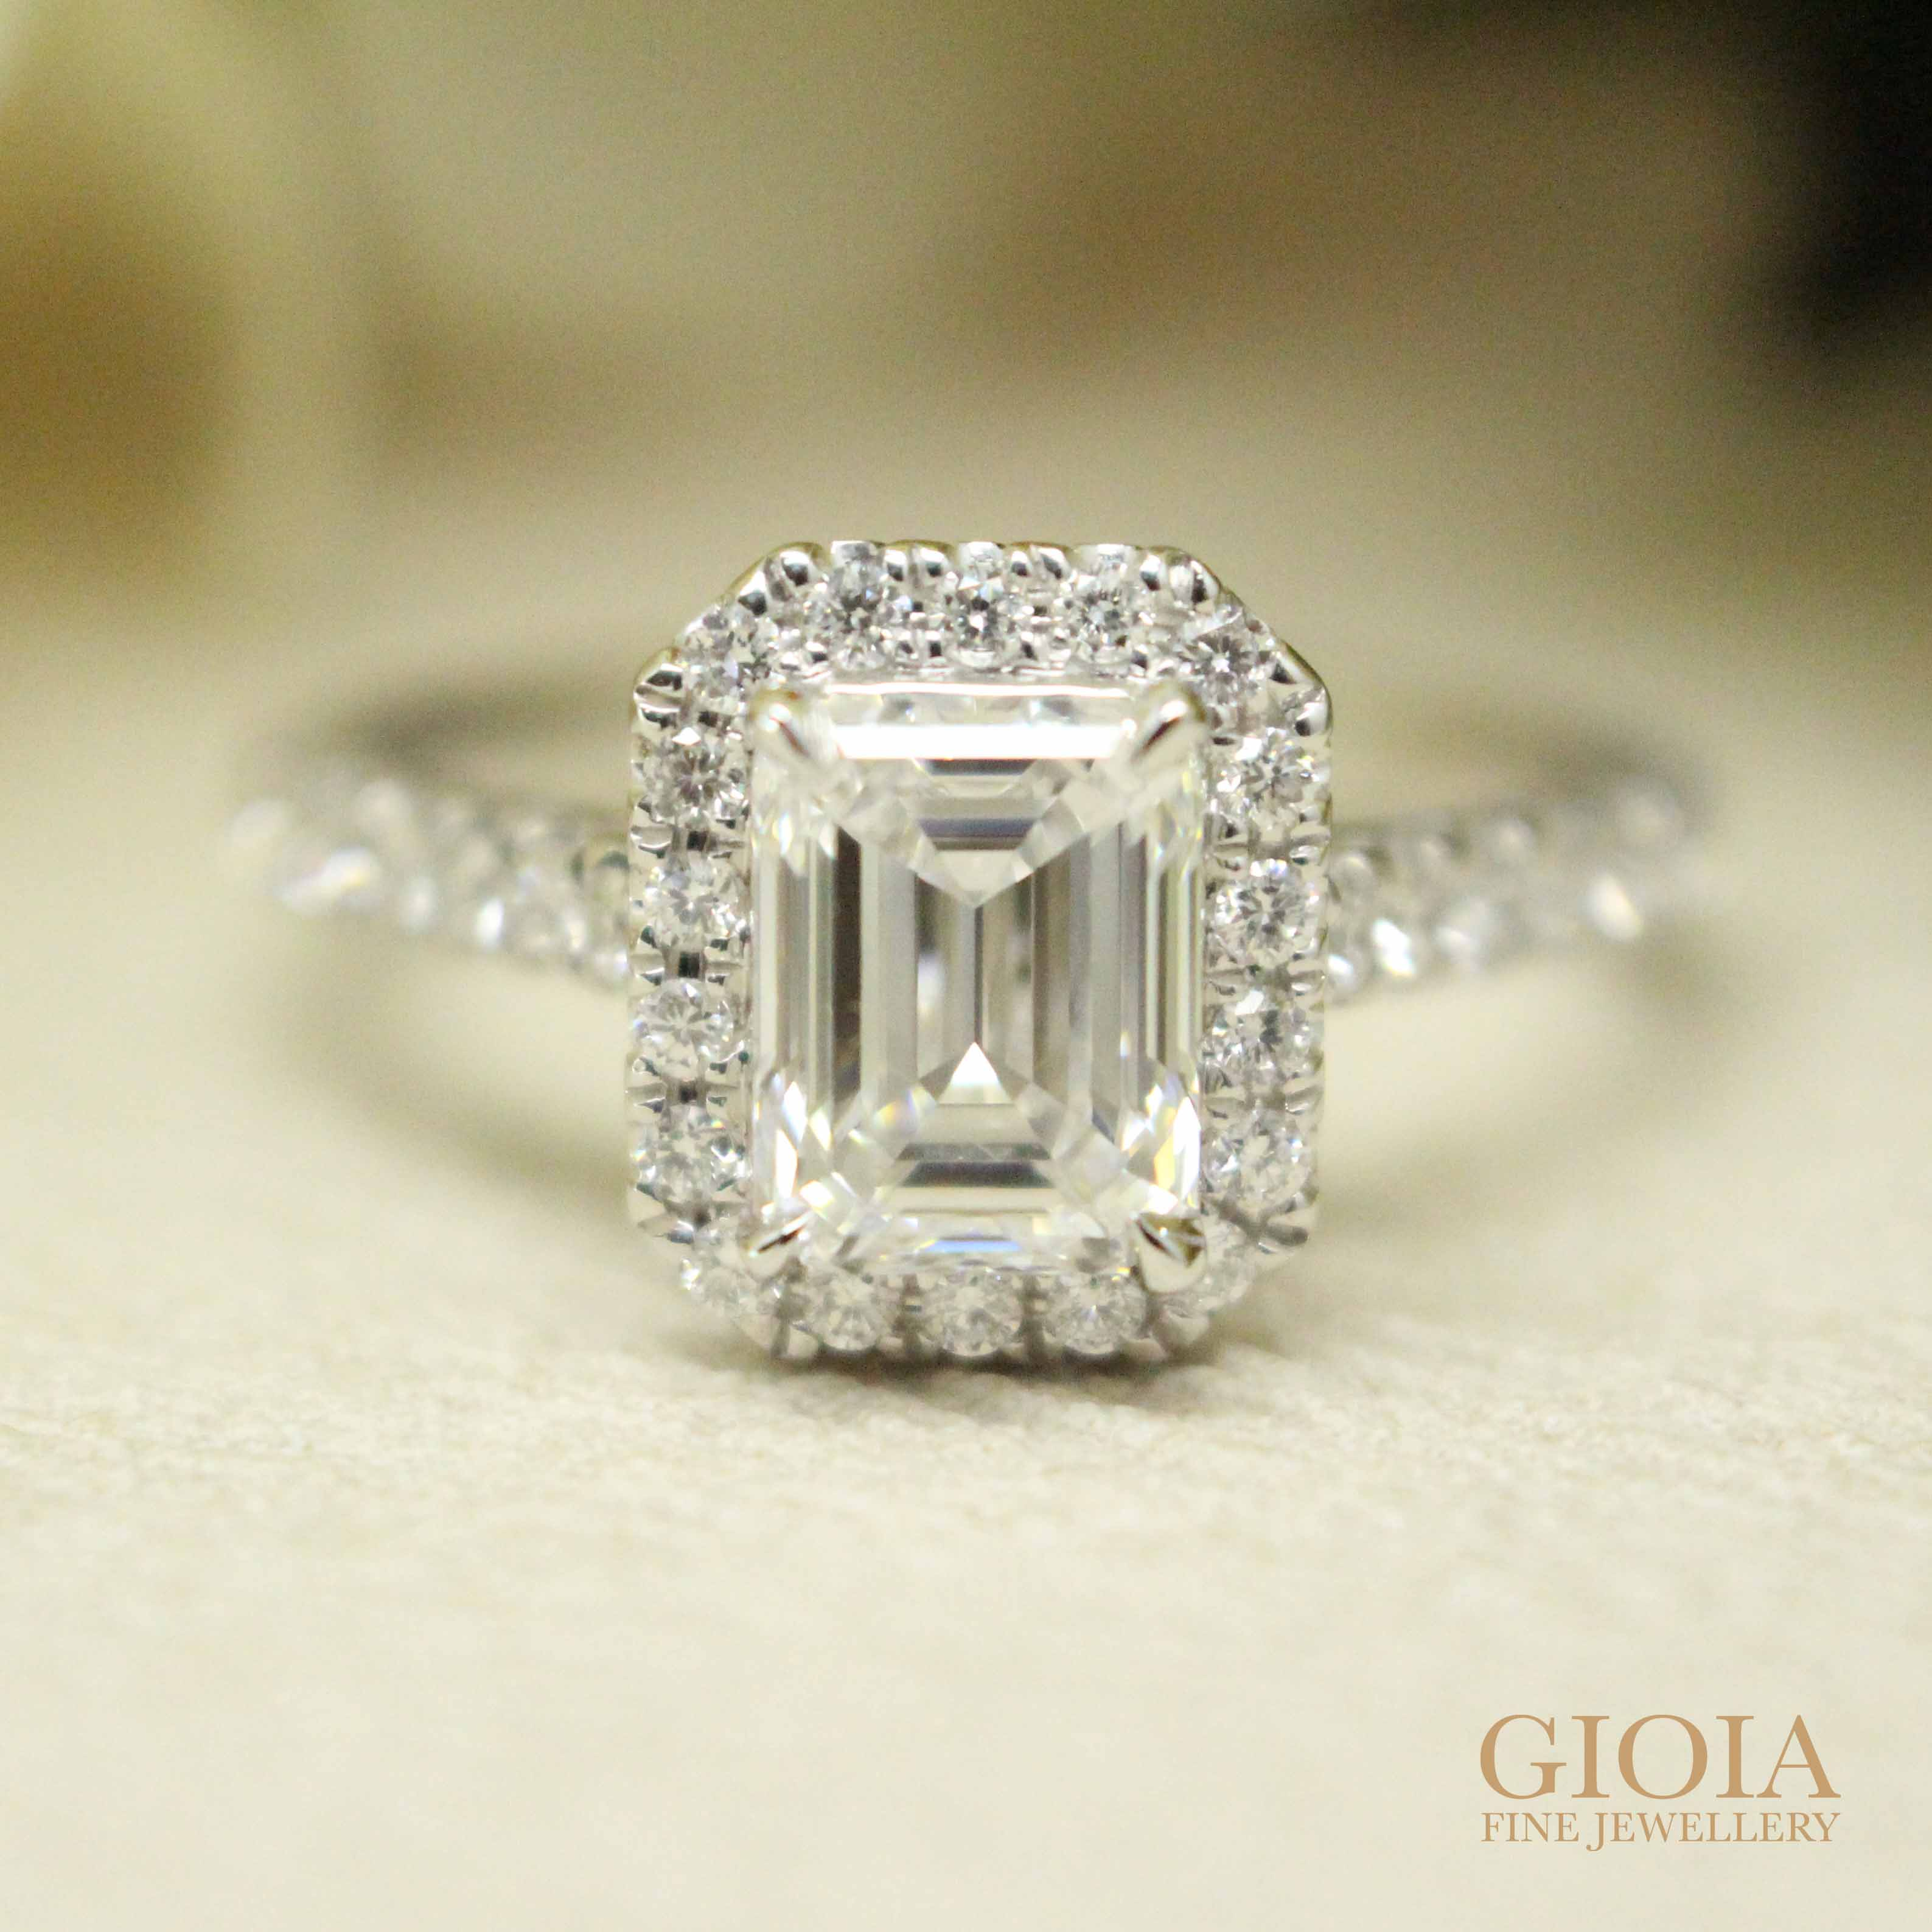 Emerald-cut diamond Proposal Ring for wedding engagement | Customised wedding proposal ring with round brilliant, cushion, emerald cut diamond at GIOIA Fine Jewellery